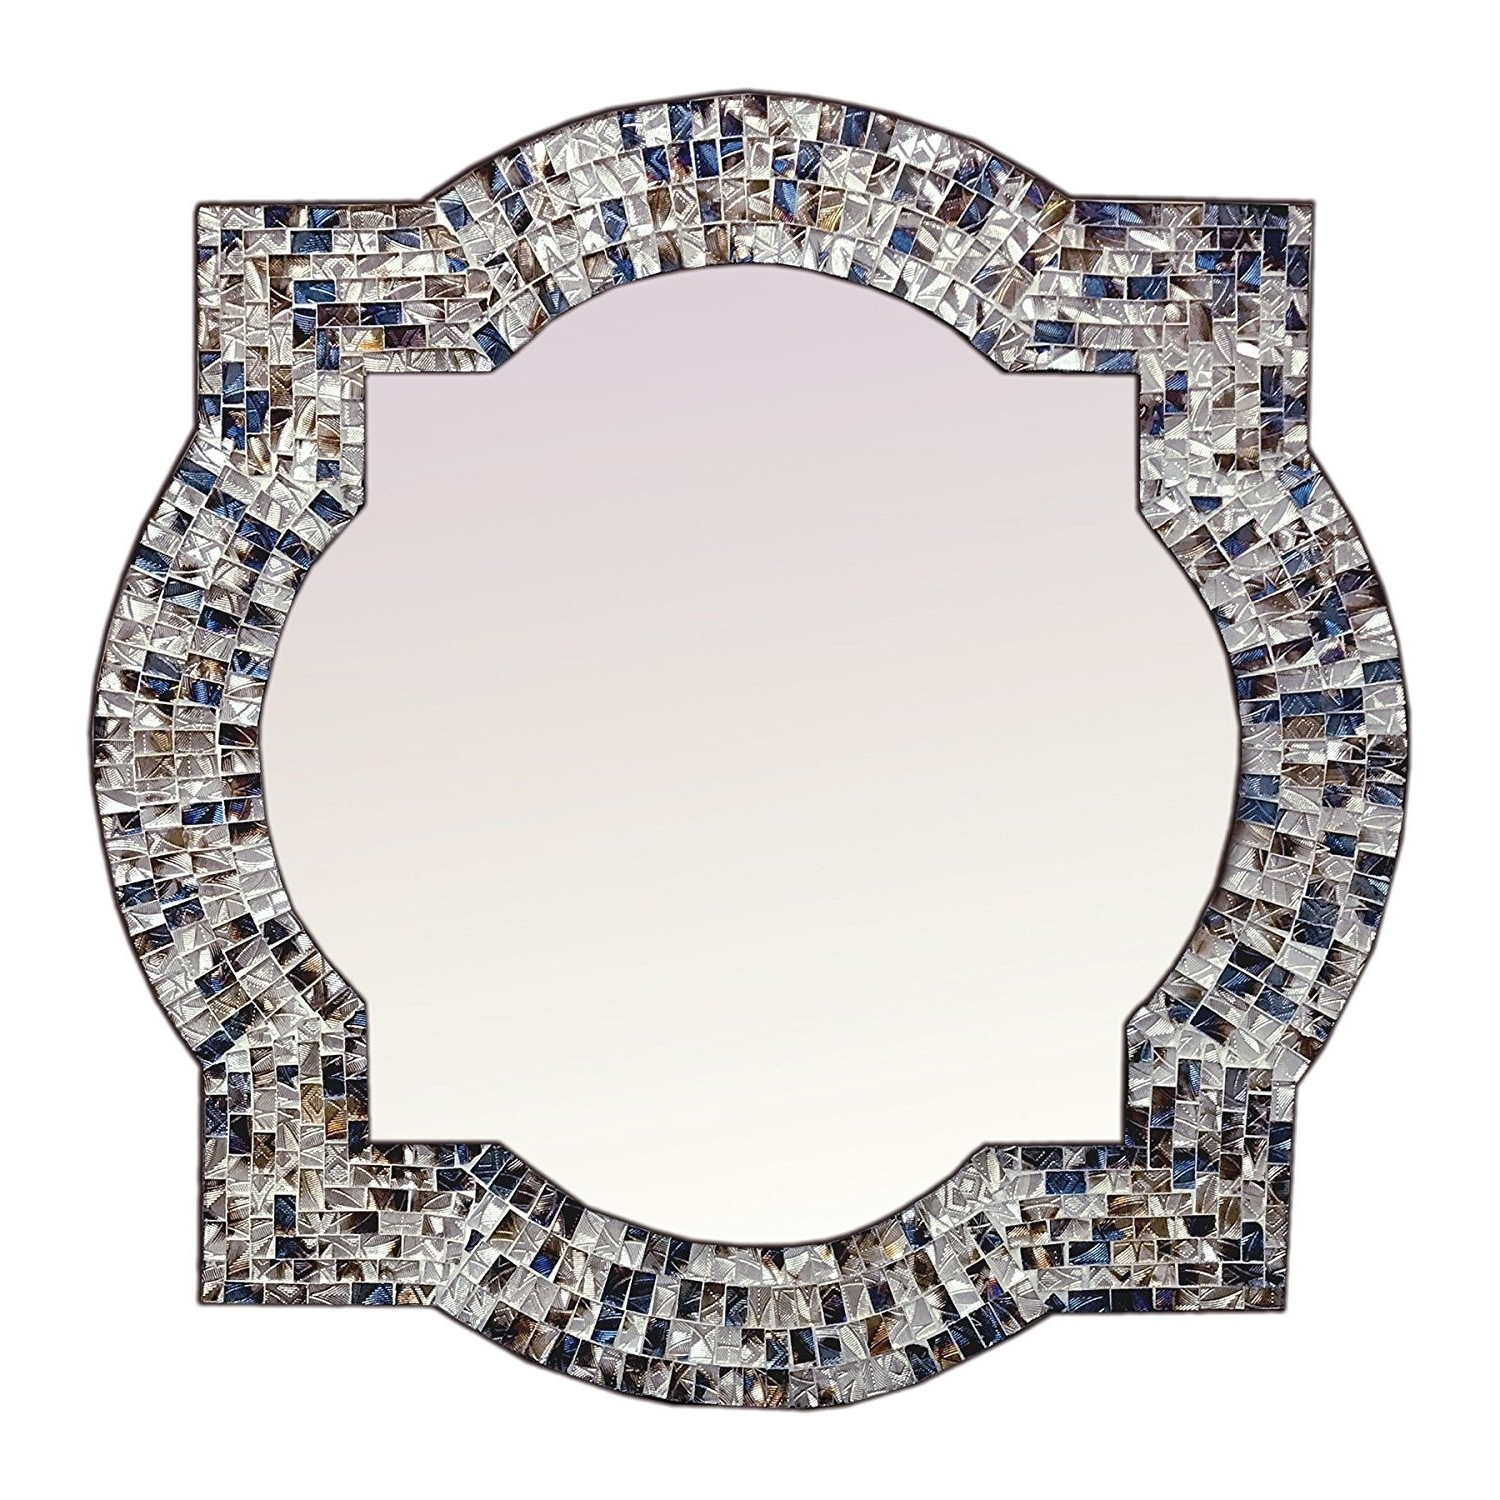 Andalusian Quatrefoil Mirror, Lindaraja Designer Mosaic Glass Pertaining To Newest Colorful Wall Mirrors (View 10 of 20)